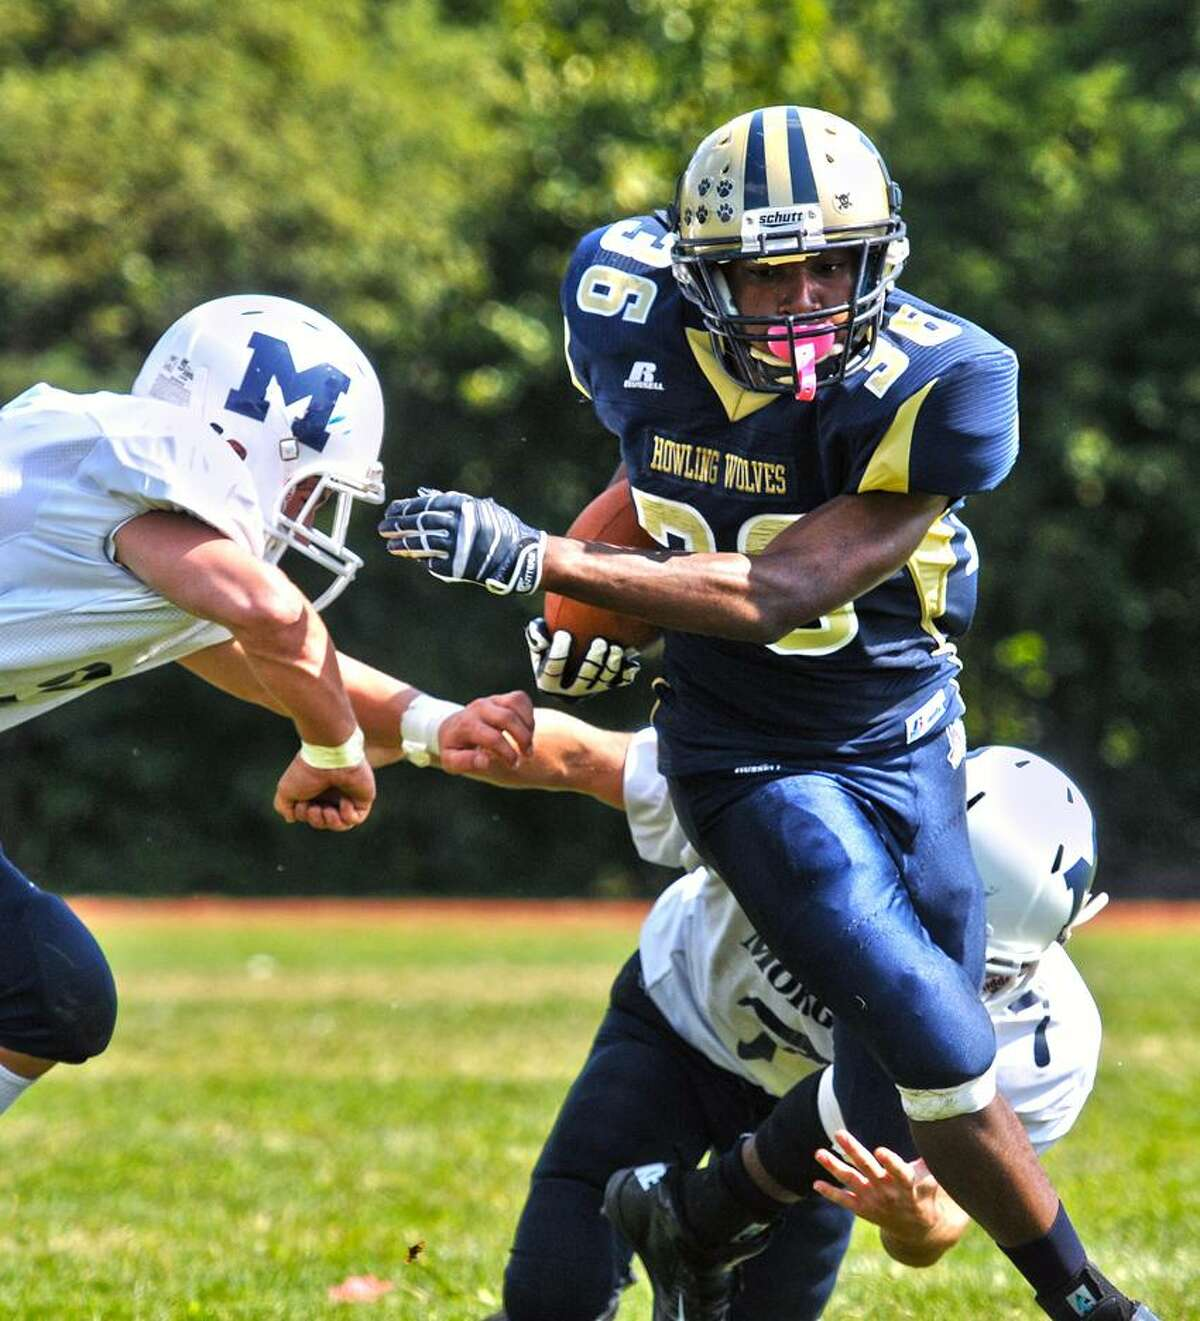 Akeem Berry, center, and the Hyde football team face North Branford Wednesday night in a Pequot Conference showdown of undefeated teams. Photo Peter Casolino/New Haven Register.